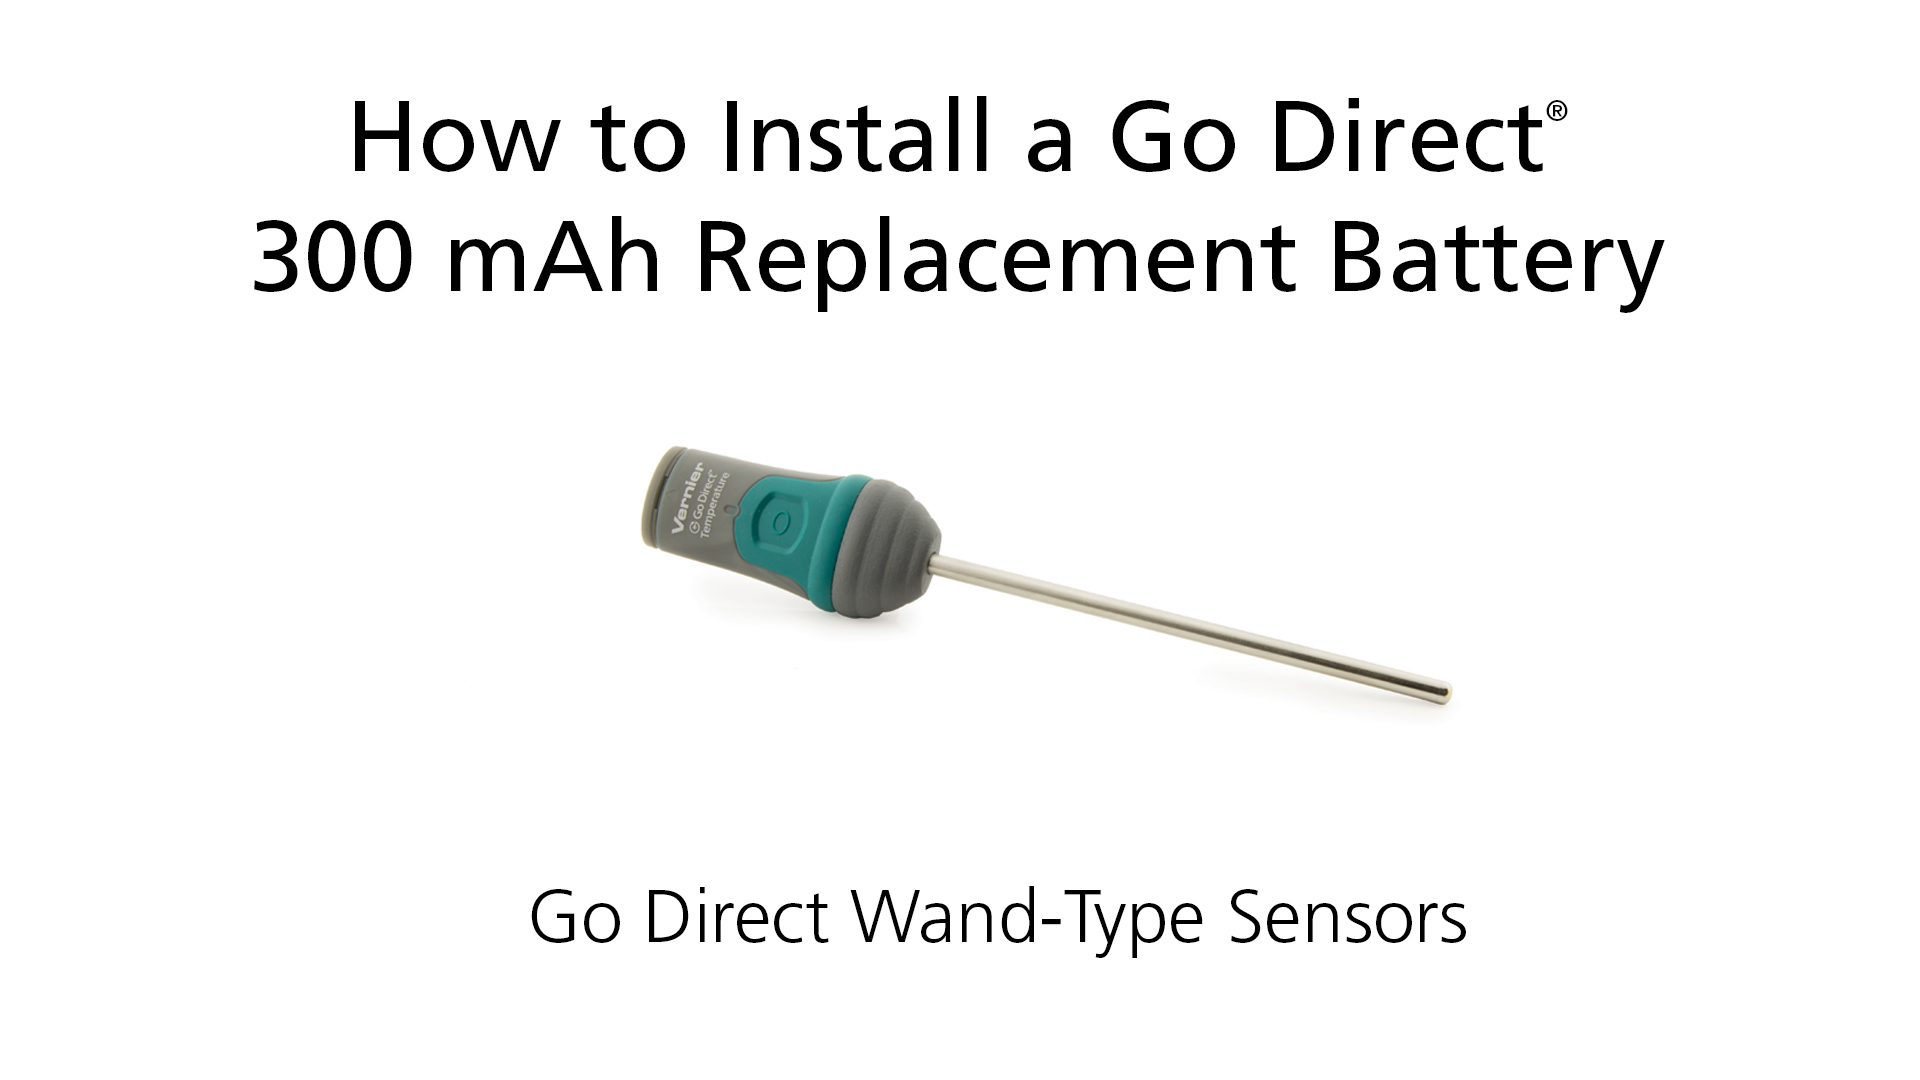 How to Install a Go Direct® 300 mAh Replacement Battery in Wand-Type Sensors video